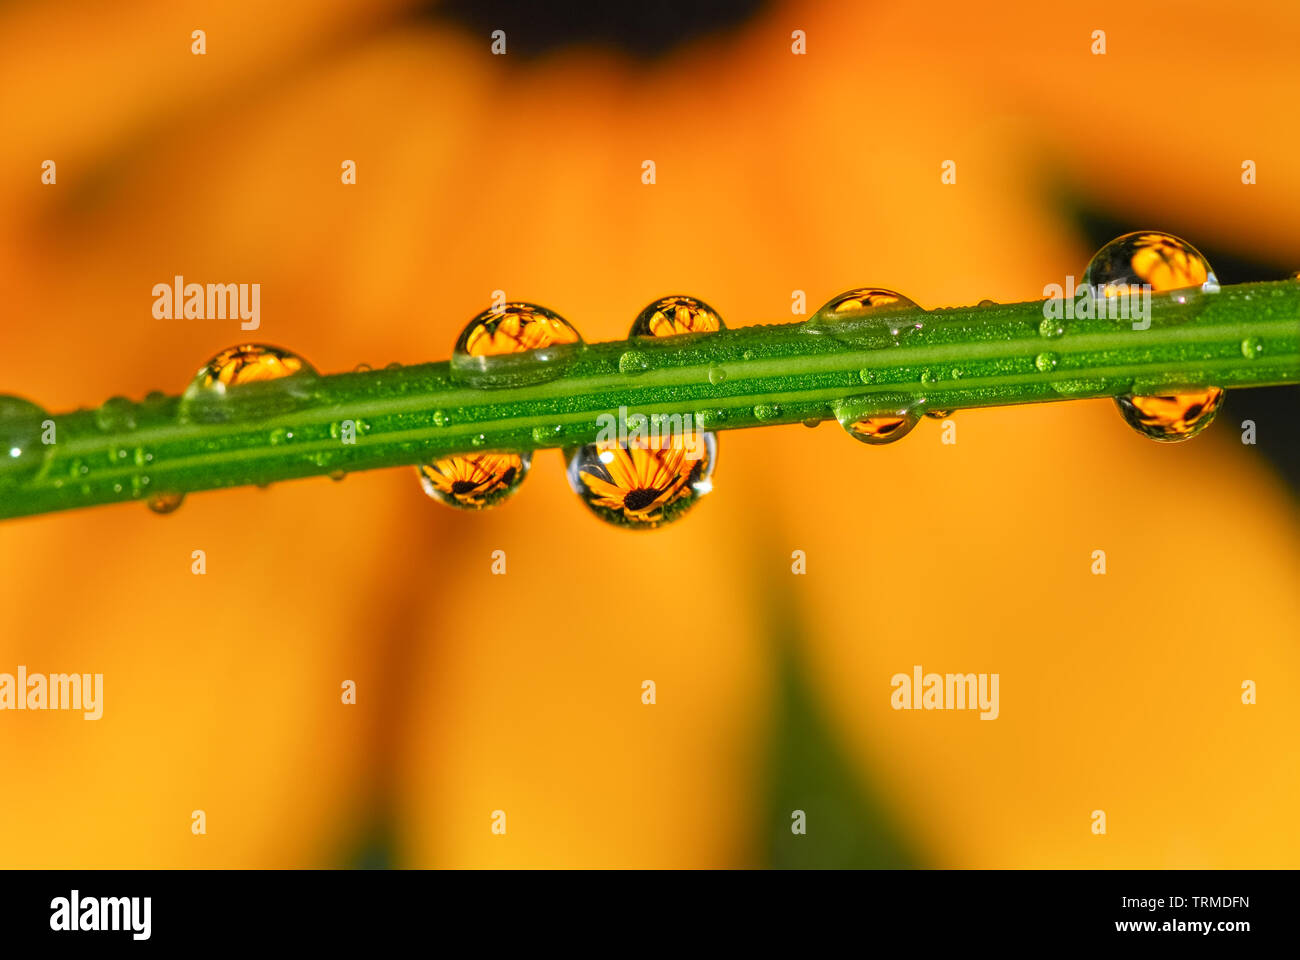 Close up of water drops after rain with reflections of yellow orange colored coneflower blooms in a summery garden - Stock Image